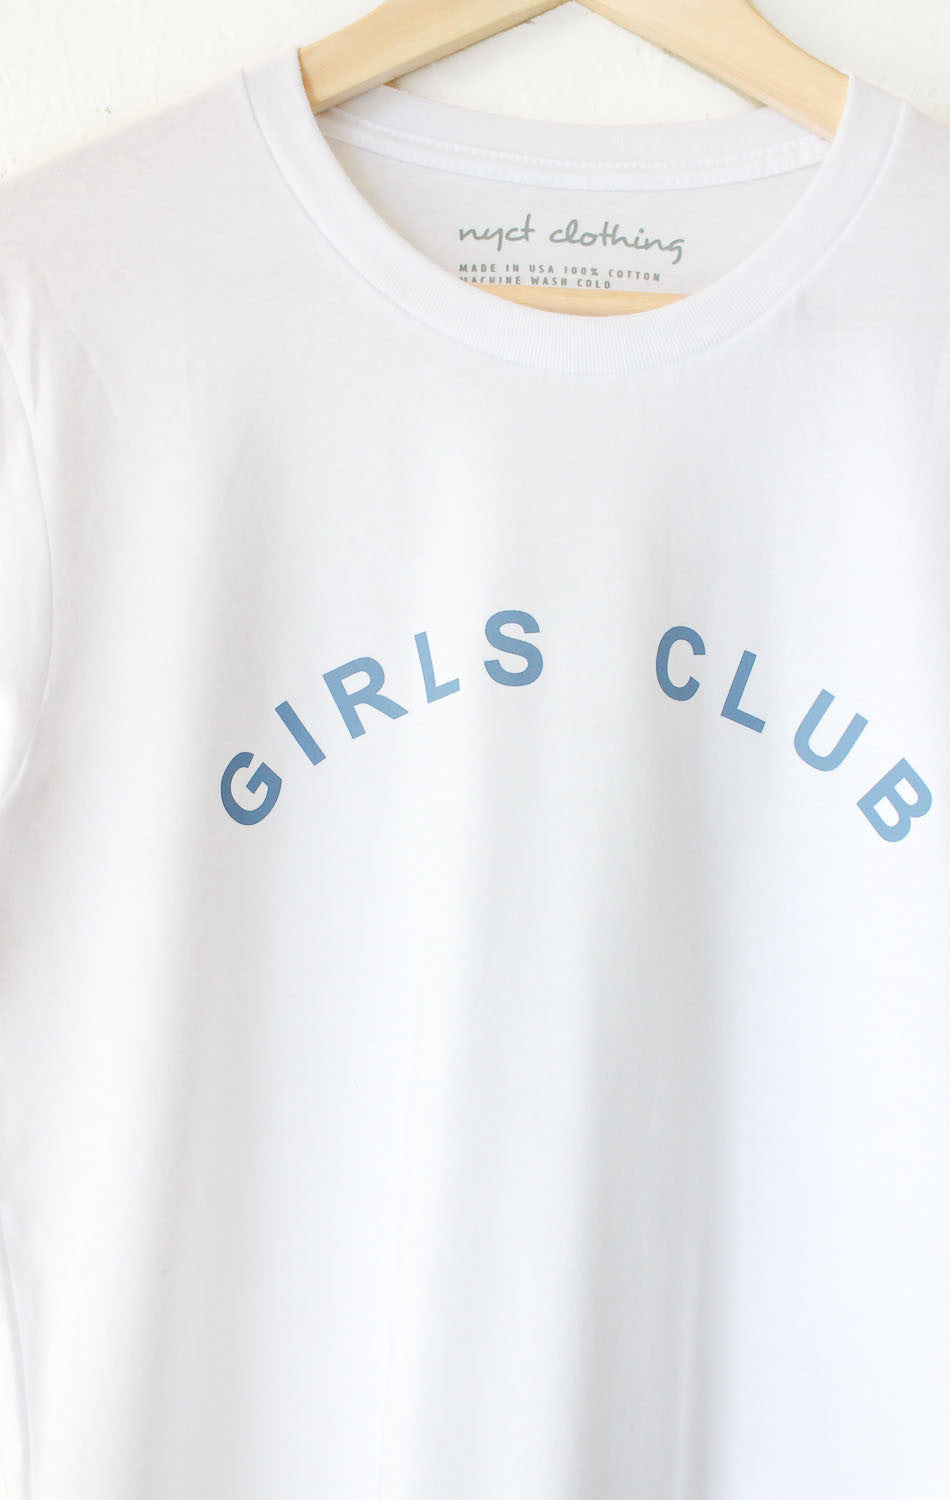 NYCT Clothing Girls Club Tee